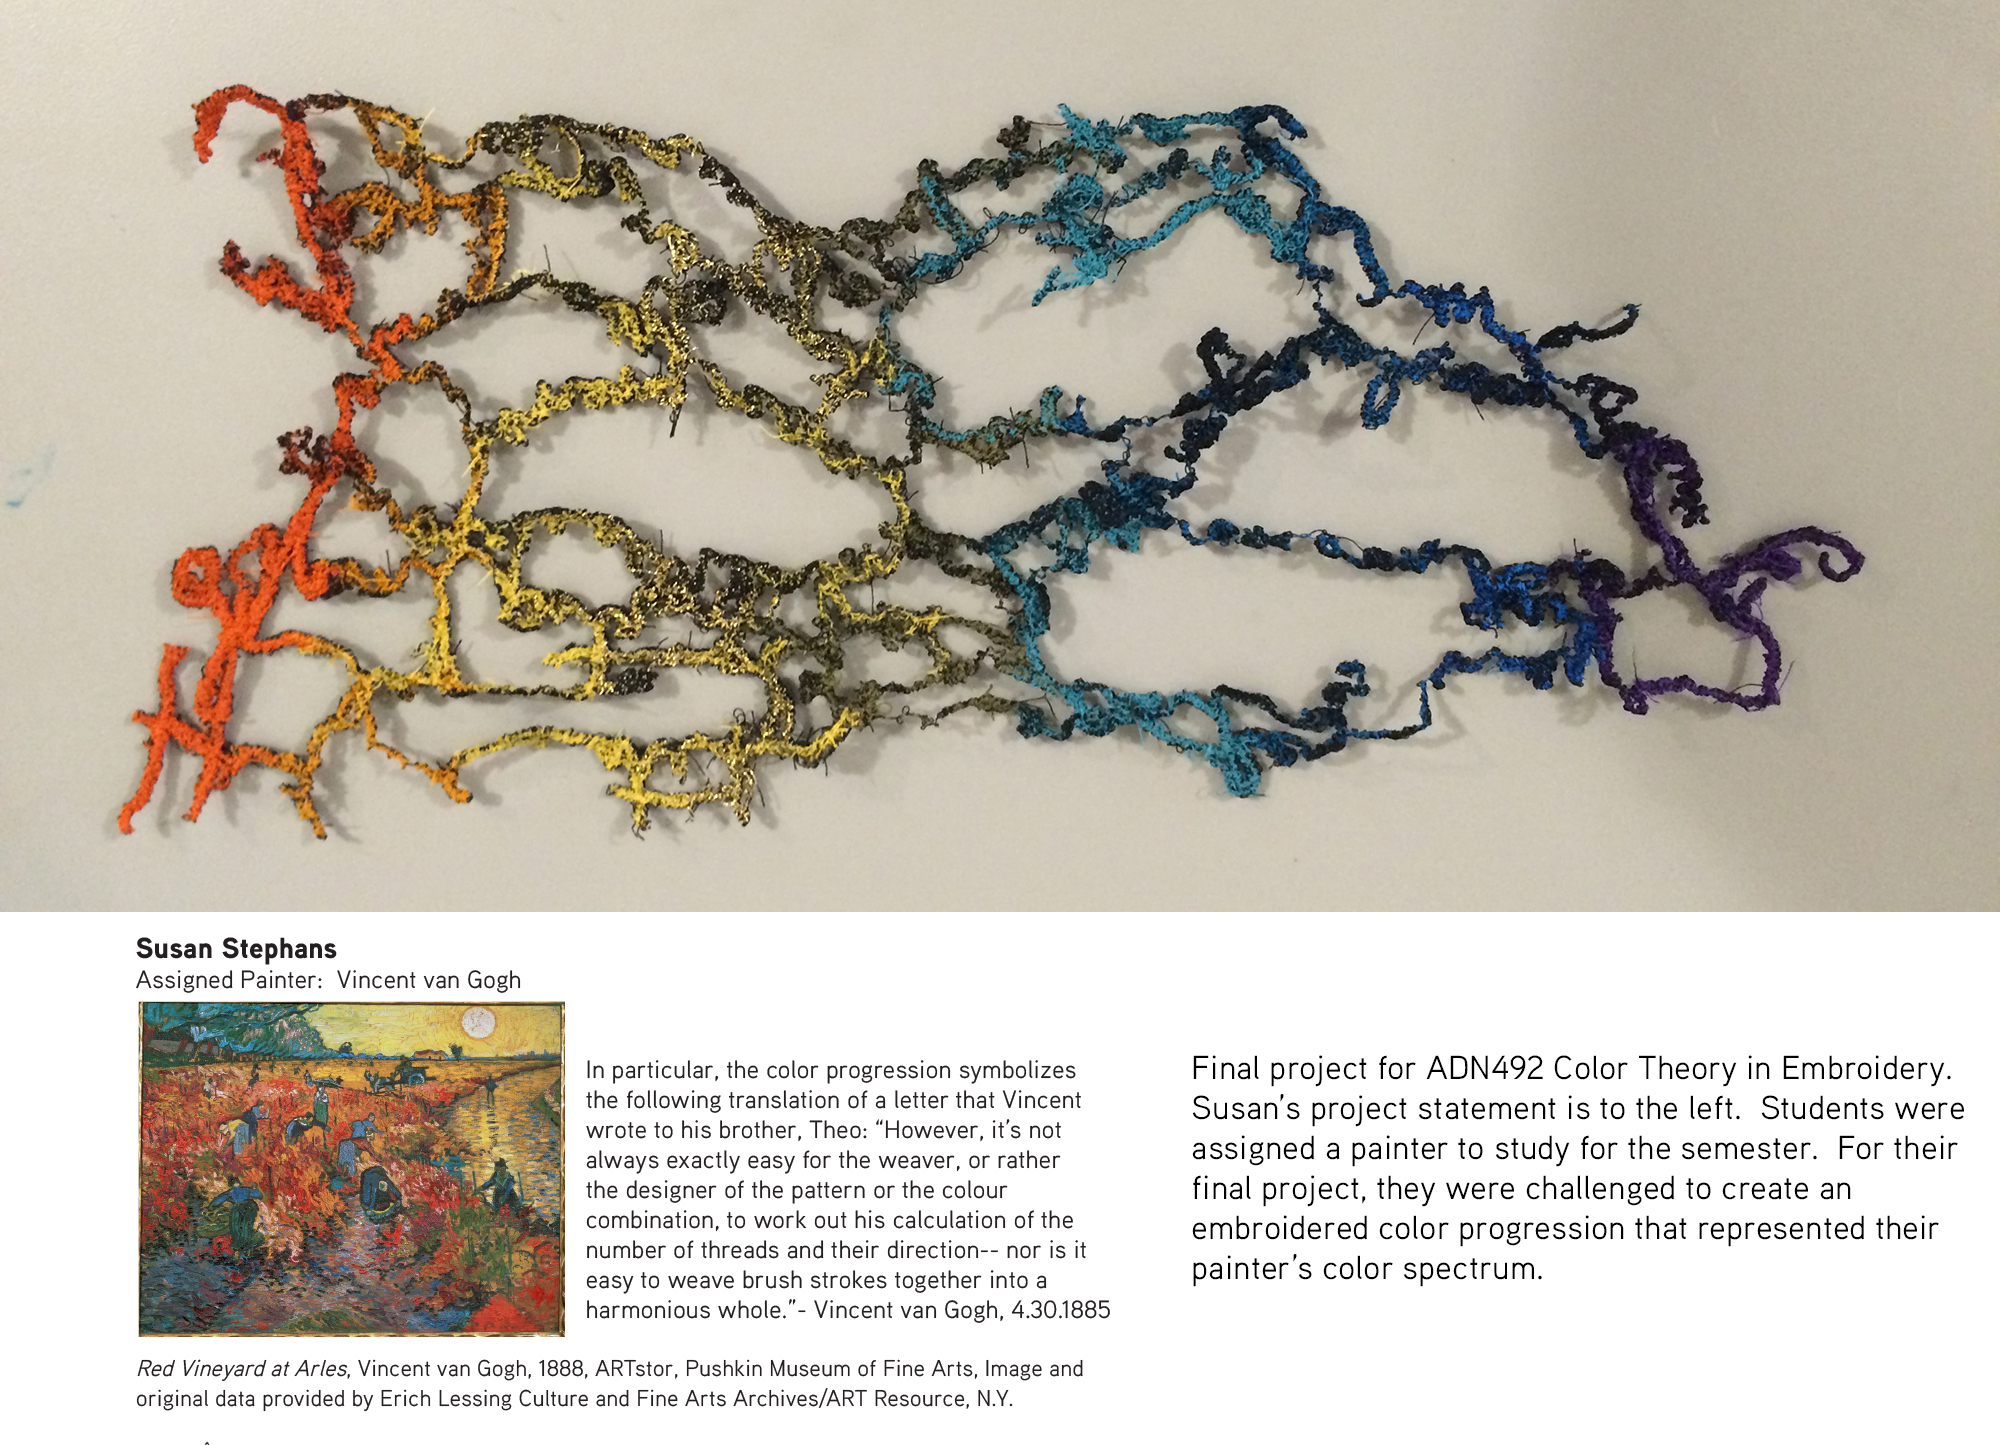 Susan Stephens  ADN492 Color in Embroidery, Fall 2014